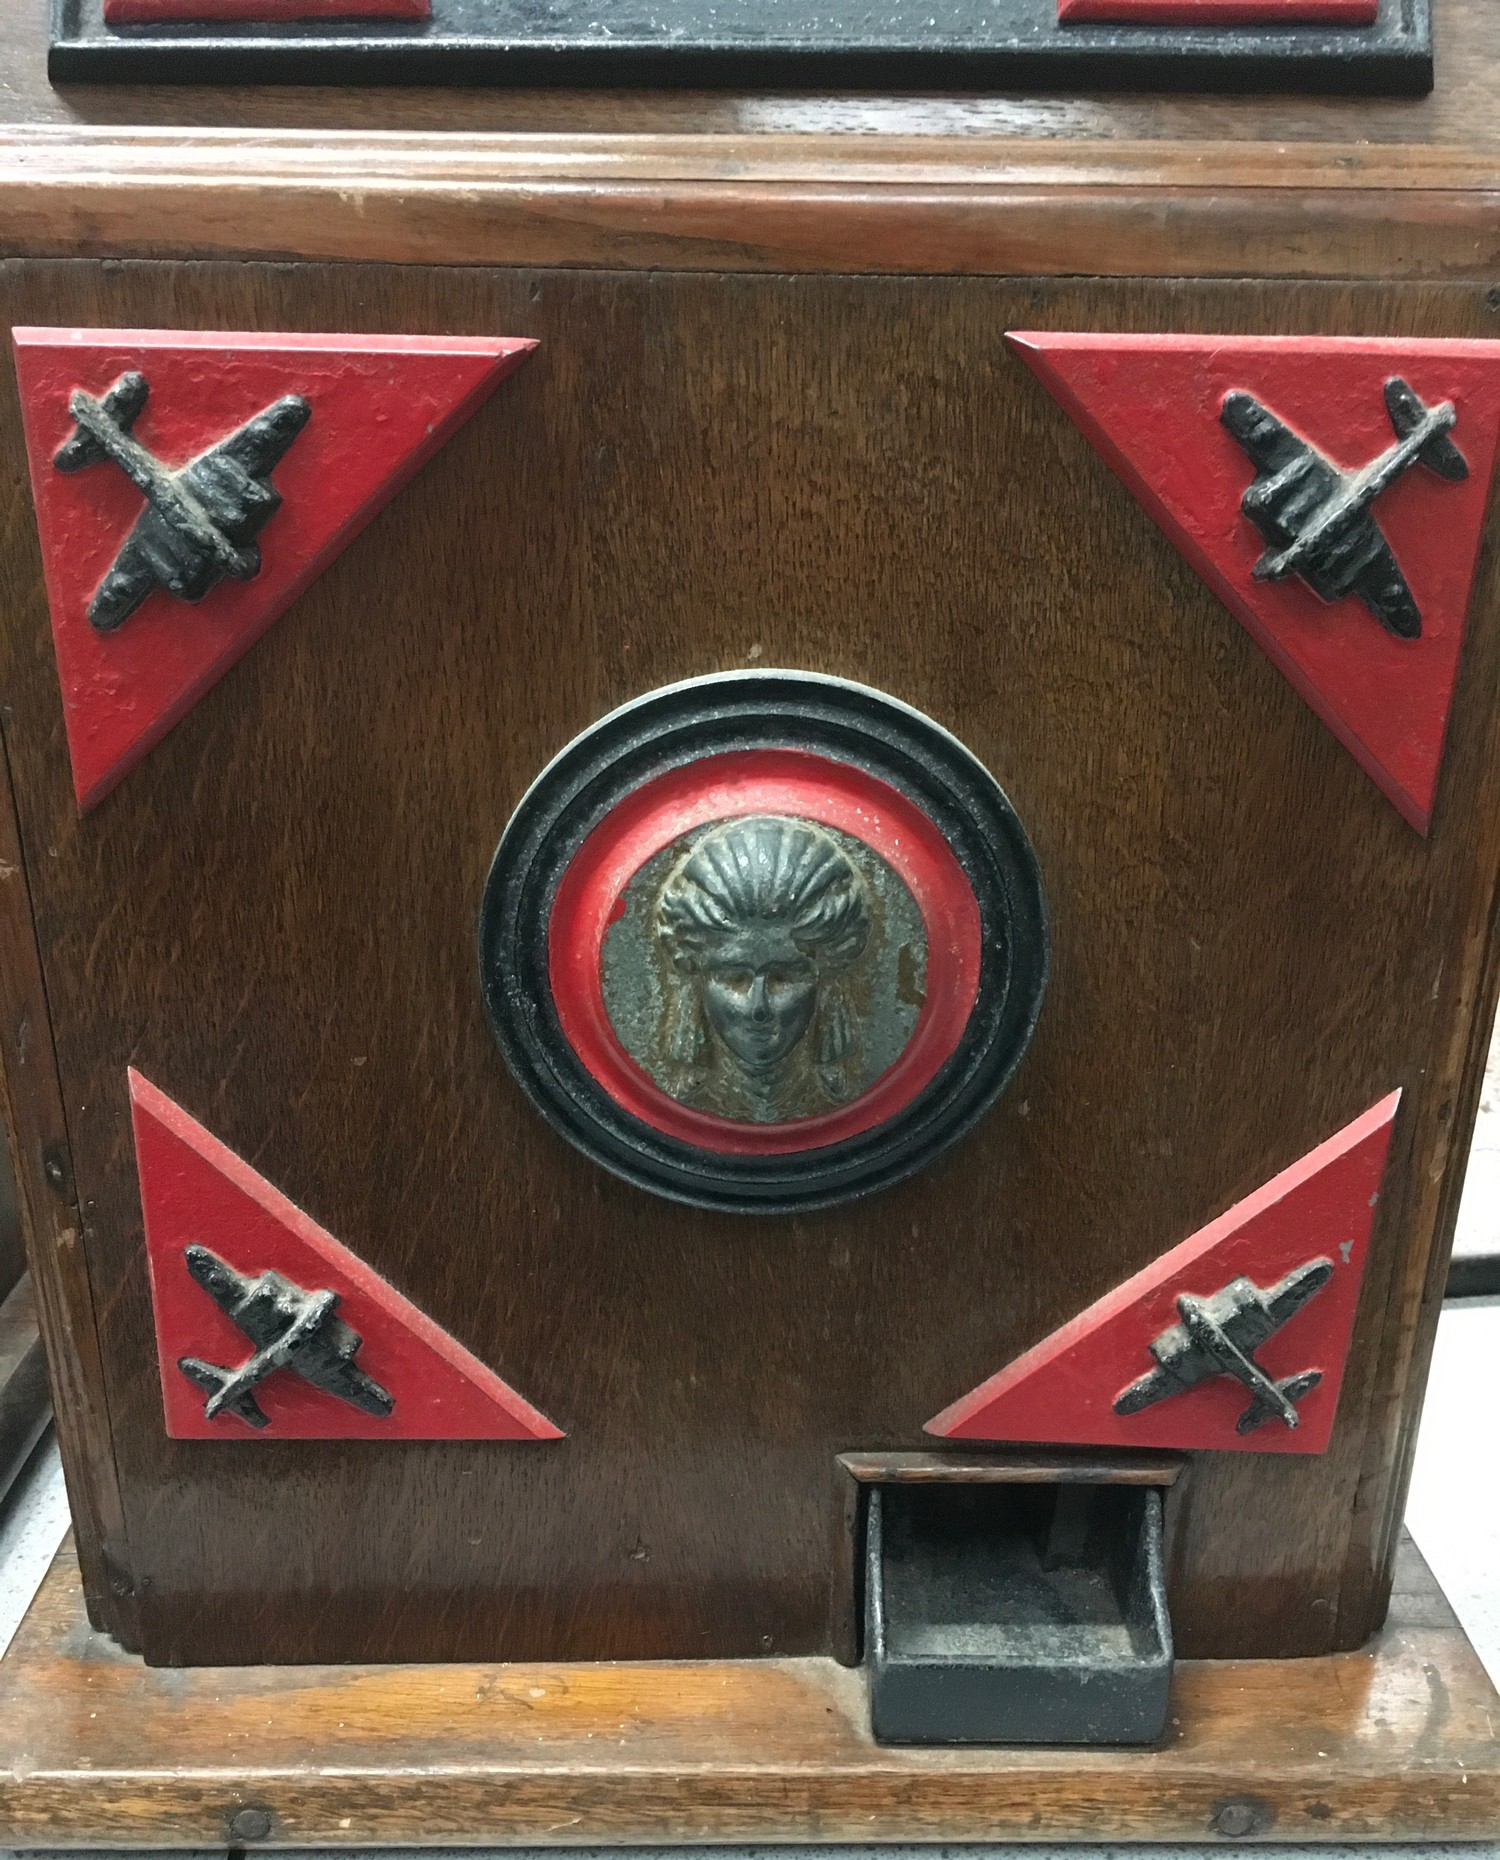 Bomber Command Slot Machine. Works on 1d coin. Mills Mechanism. - Image 3 of 8